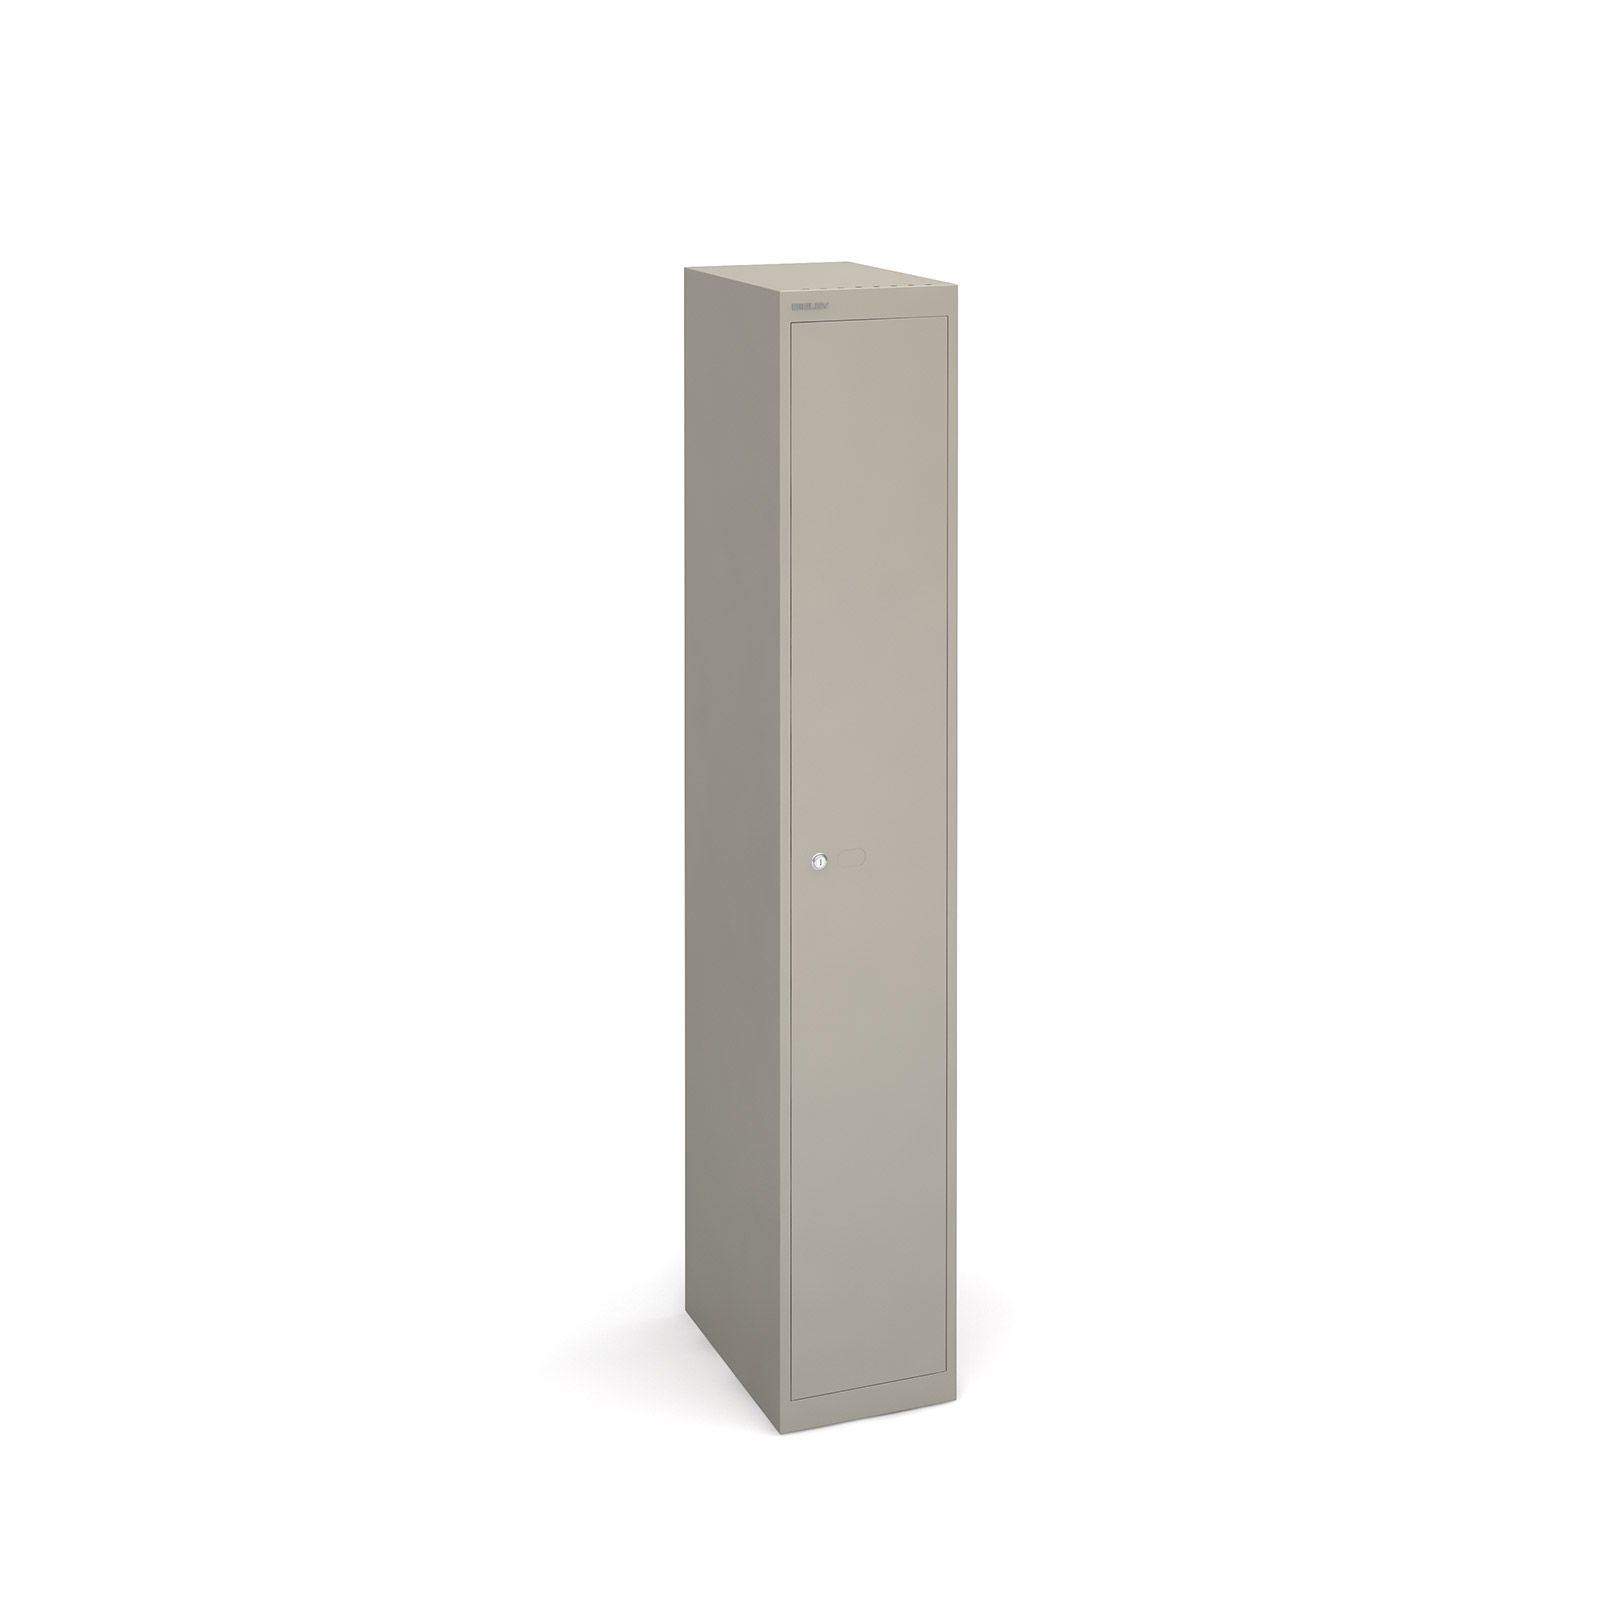 Over 1200mm High Bisley lockers 457mm deep